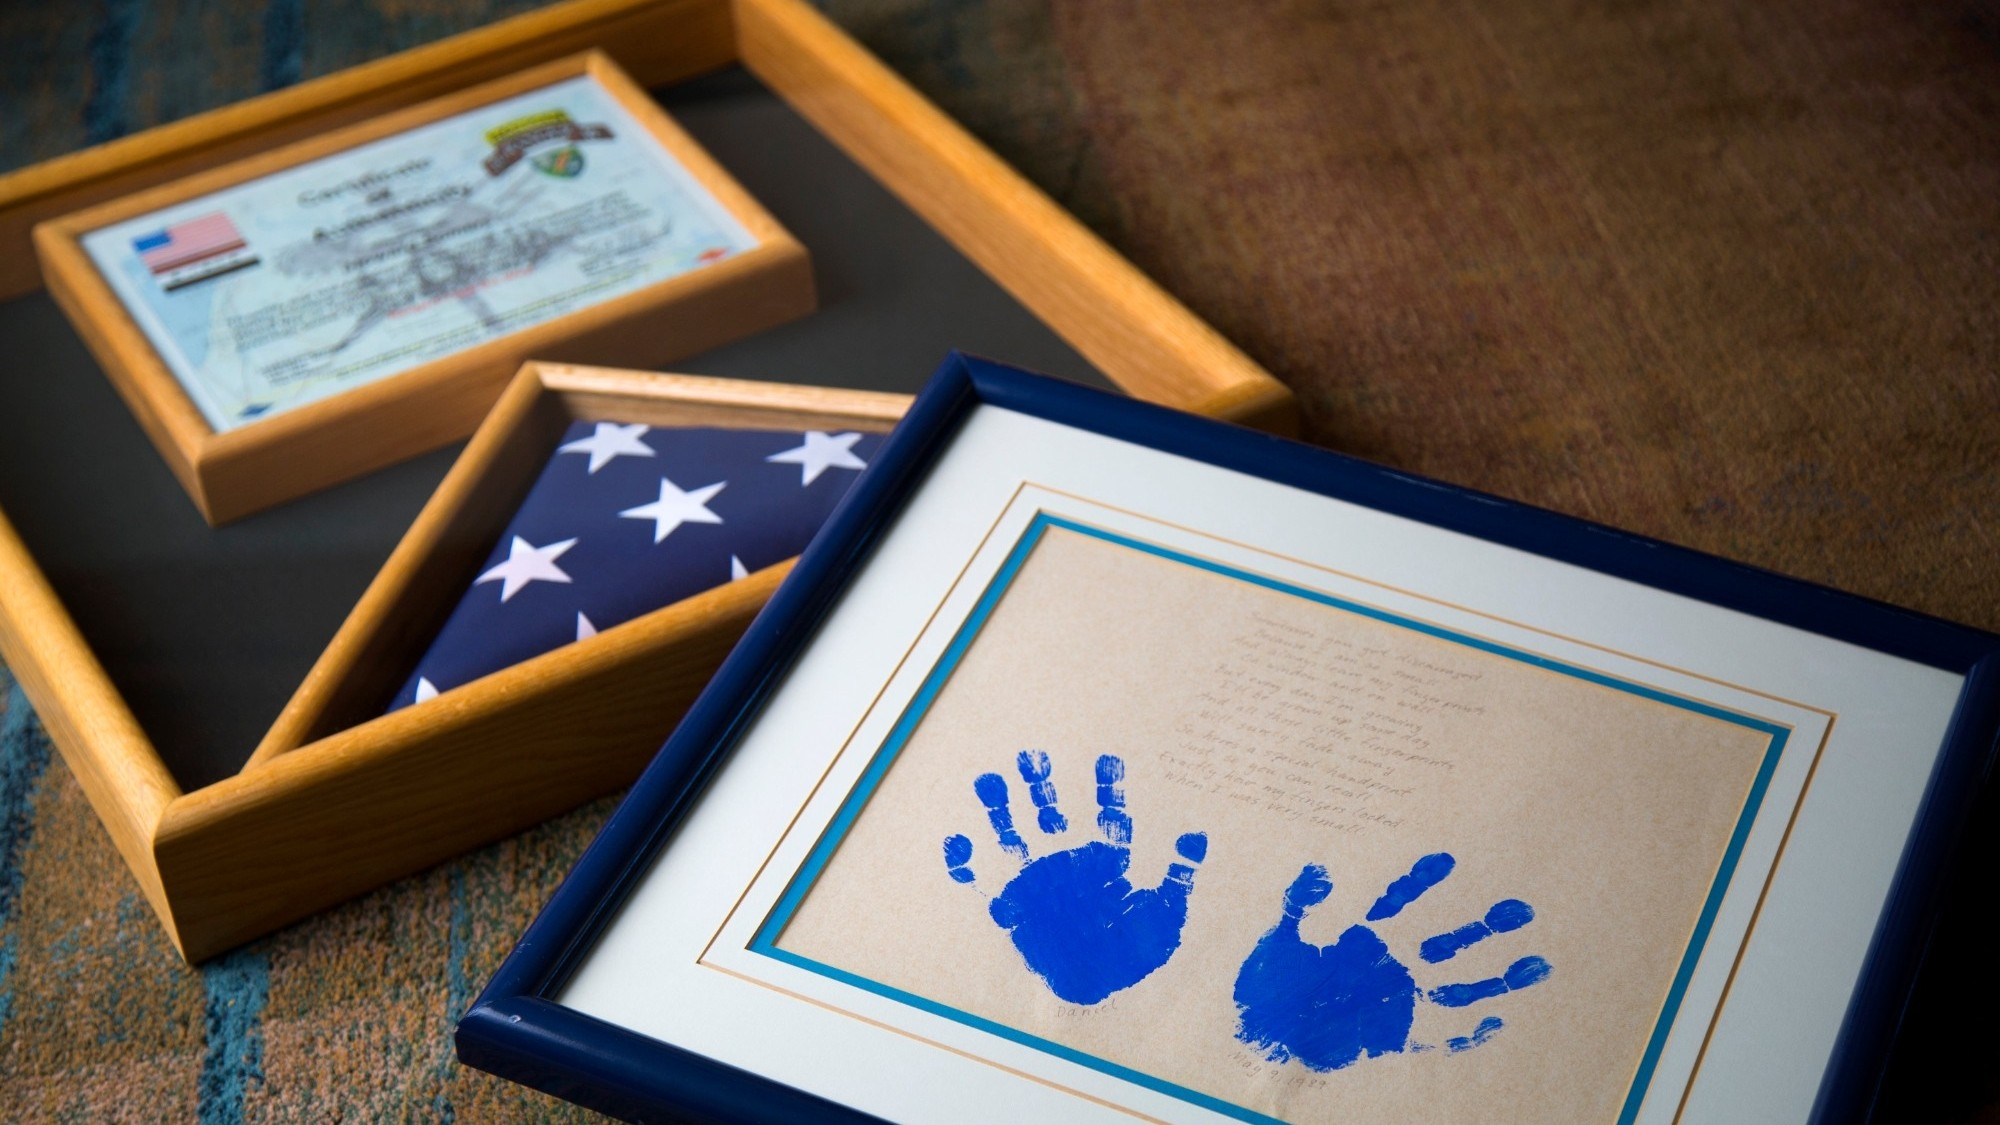 A framed U.S. flag and framed handprints, photo by Howard Lipin/San Diego Union-Tribune via Zuma Wire